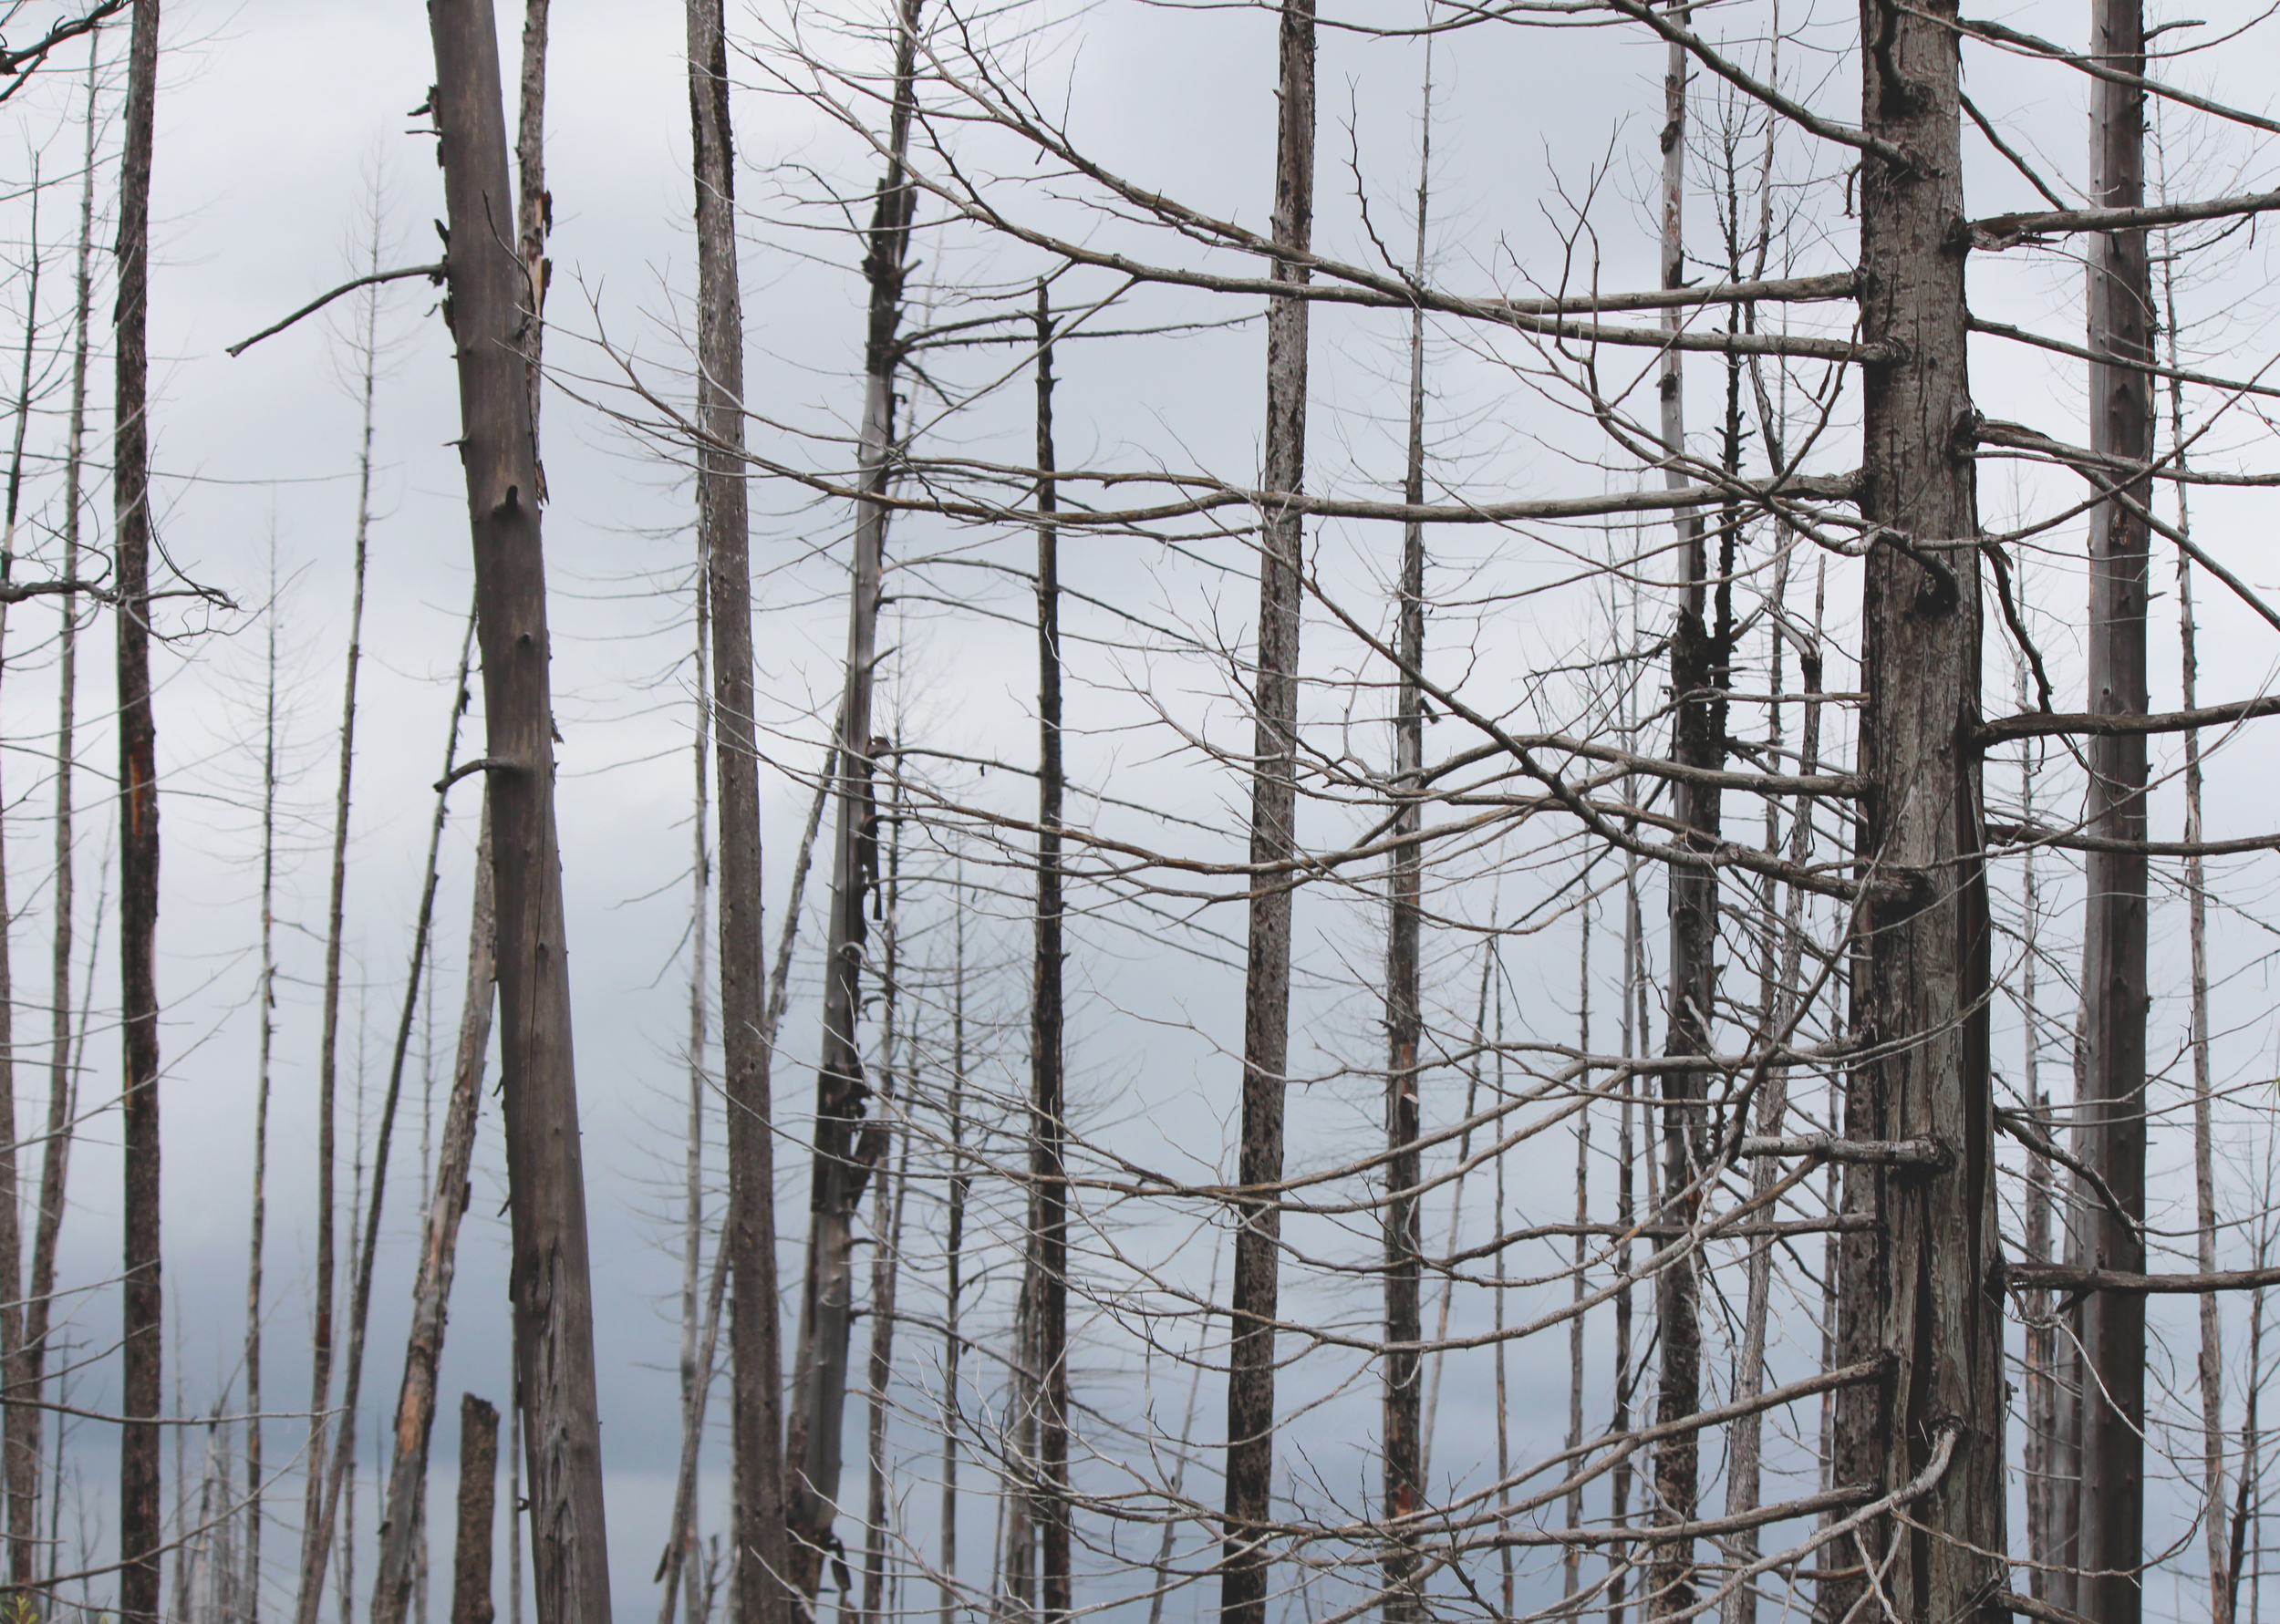 Trees after 2003 Fire - Glacier National Park, Montana